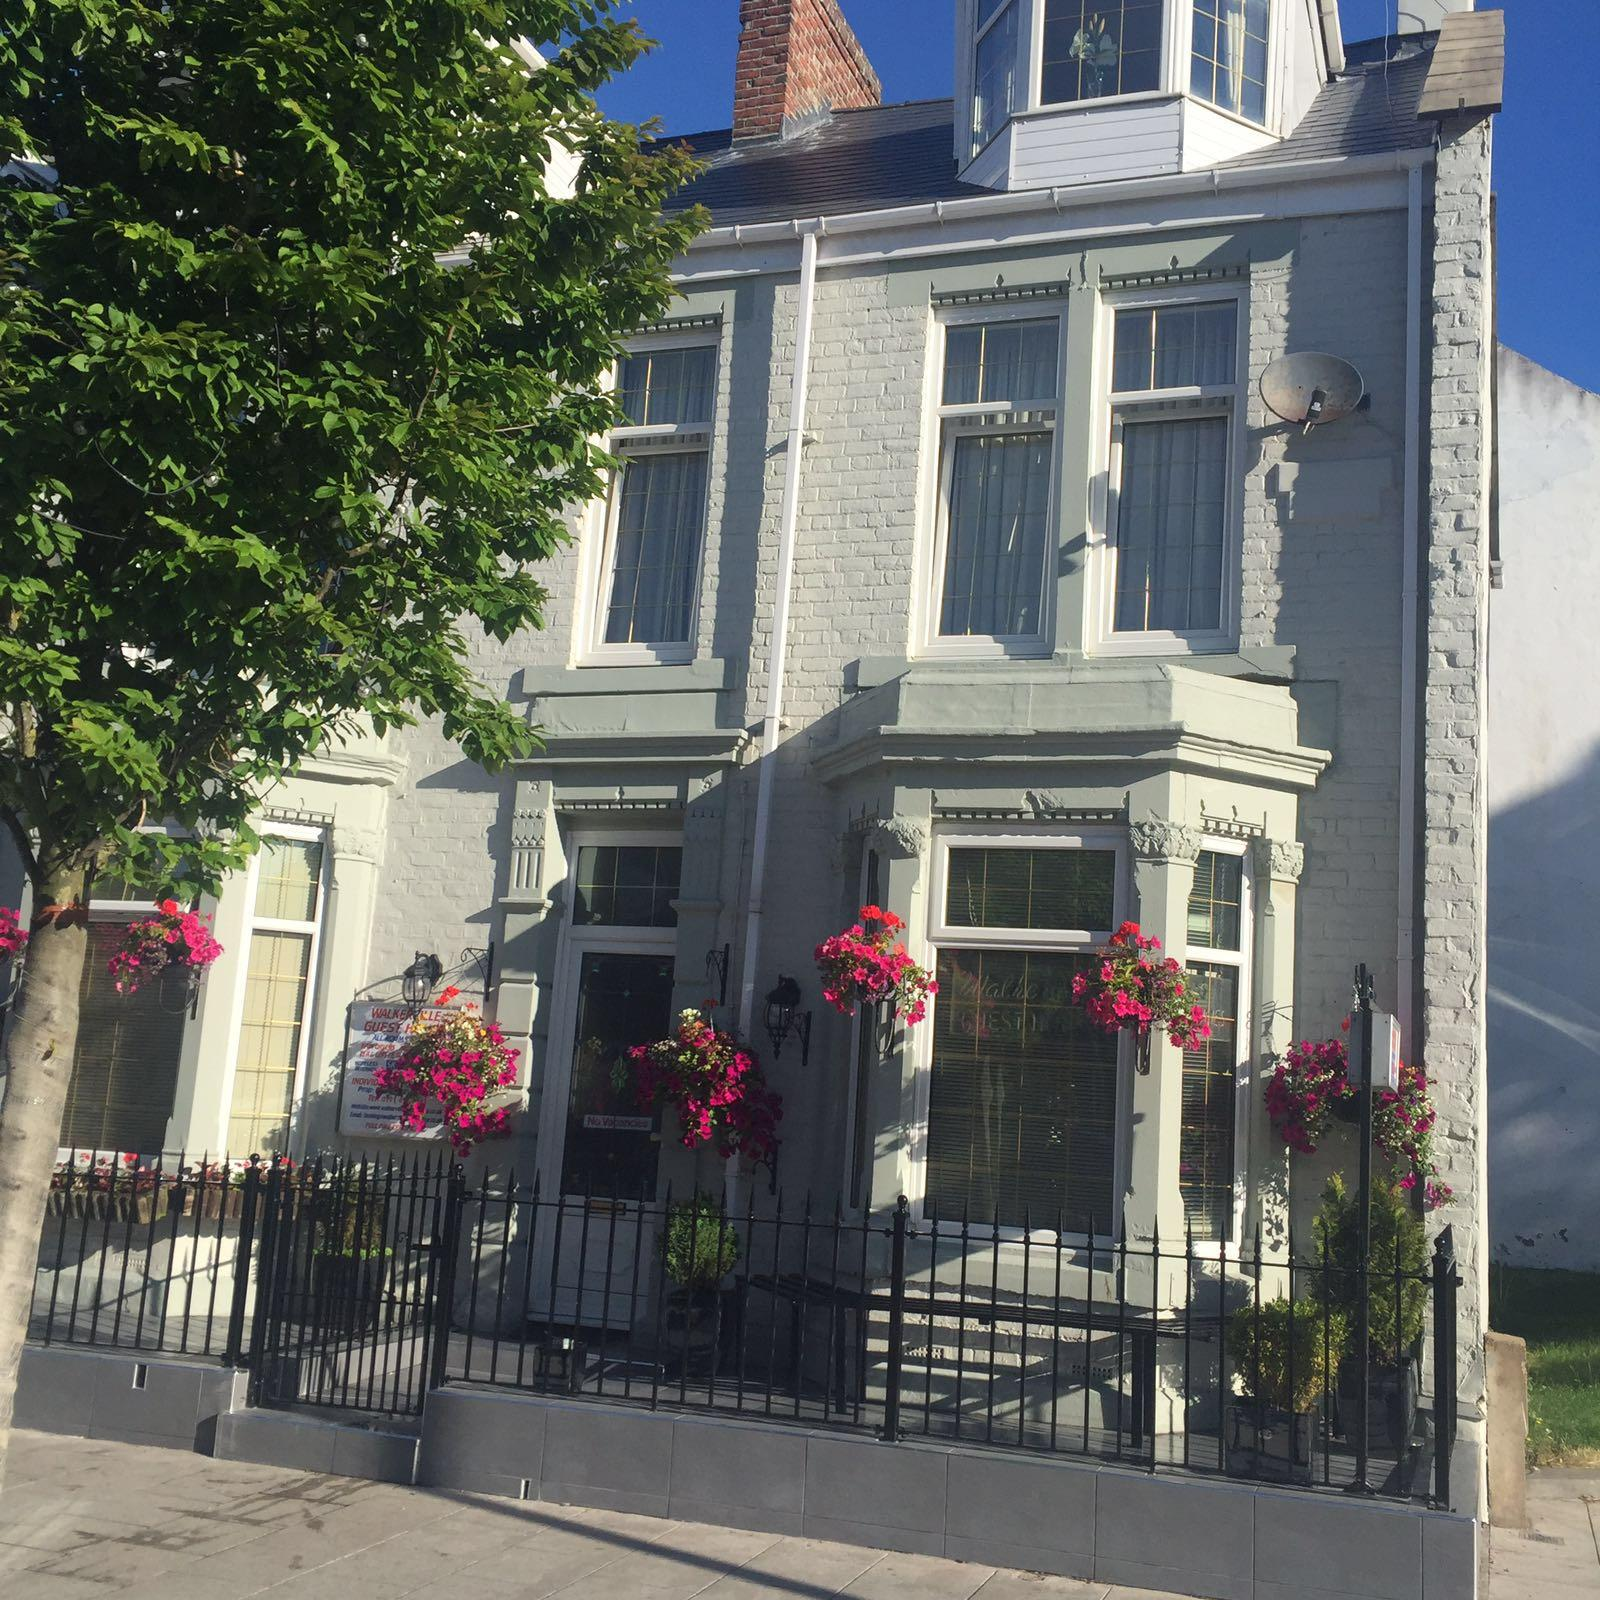 Walkerville Guest House - South Shields, Tyne and Wear NE33 2JL - 01914 565931 | ShowMeLocal.com